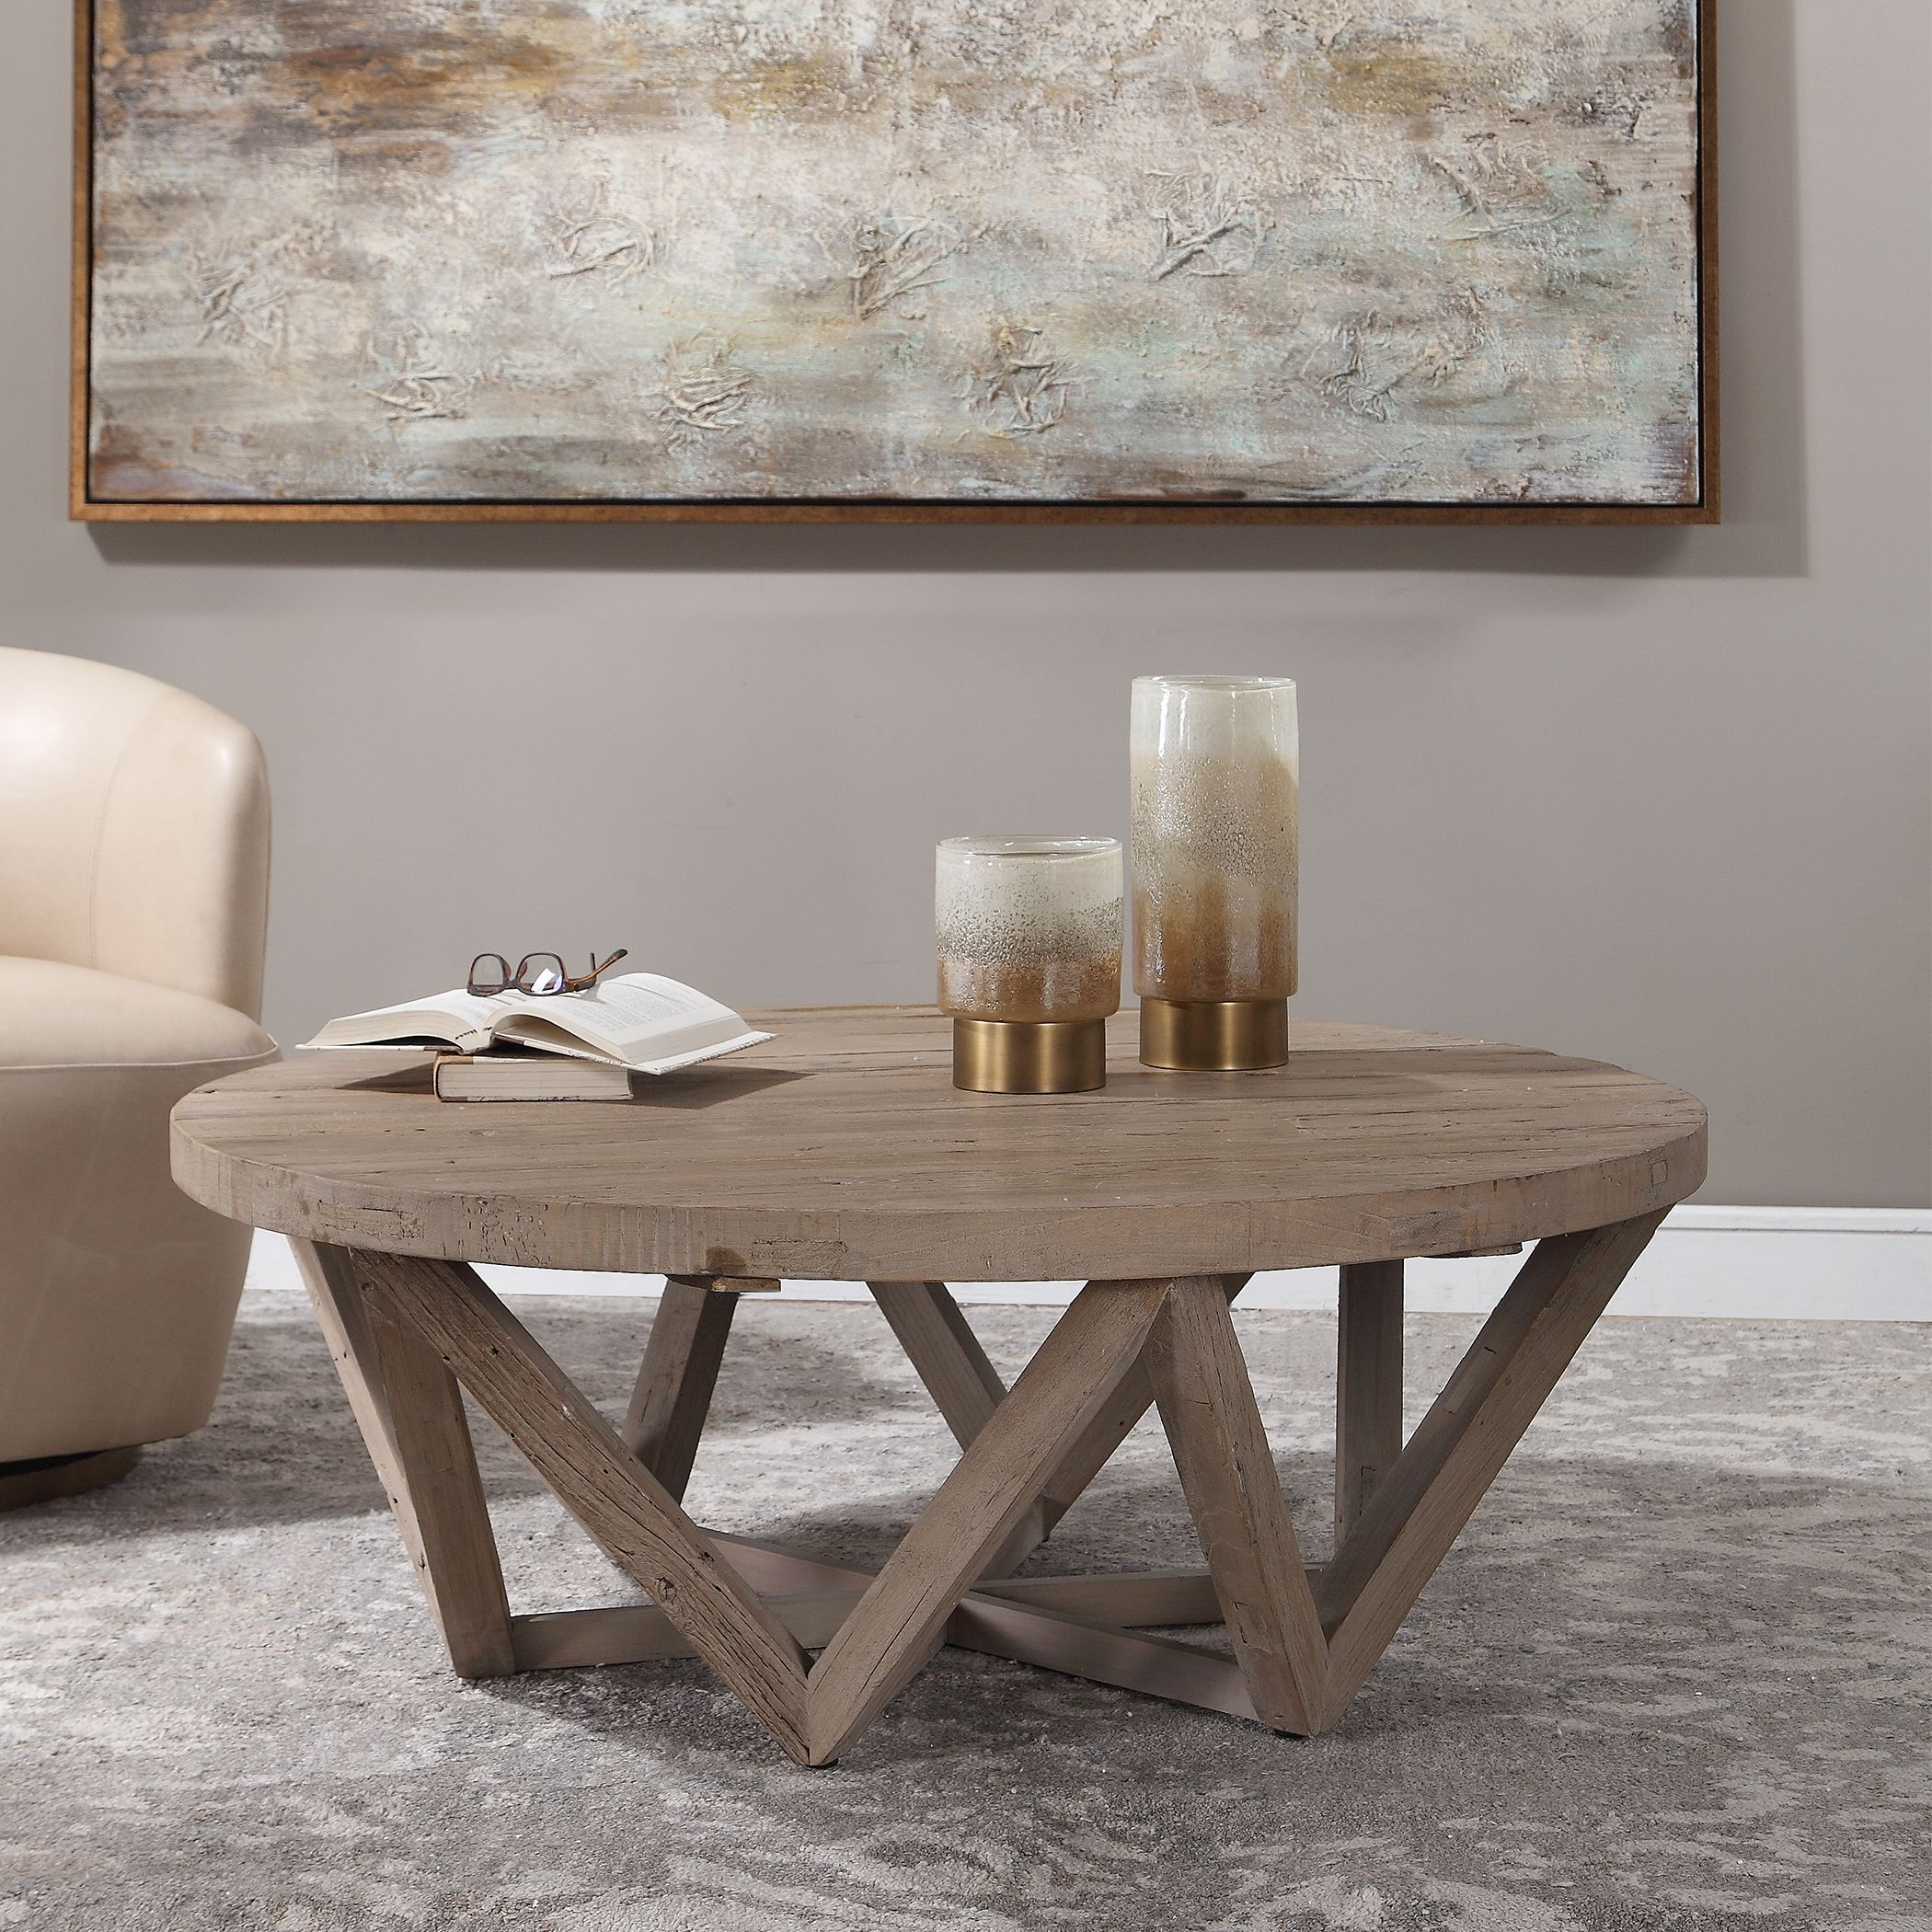 Uttermost Kendry Reclaimed Wood Coffee Table Round Round Wood